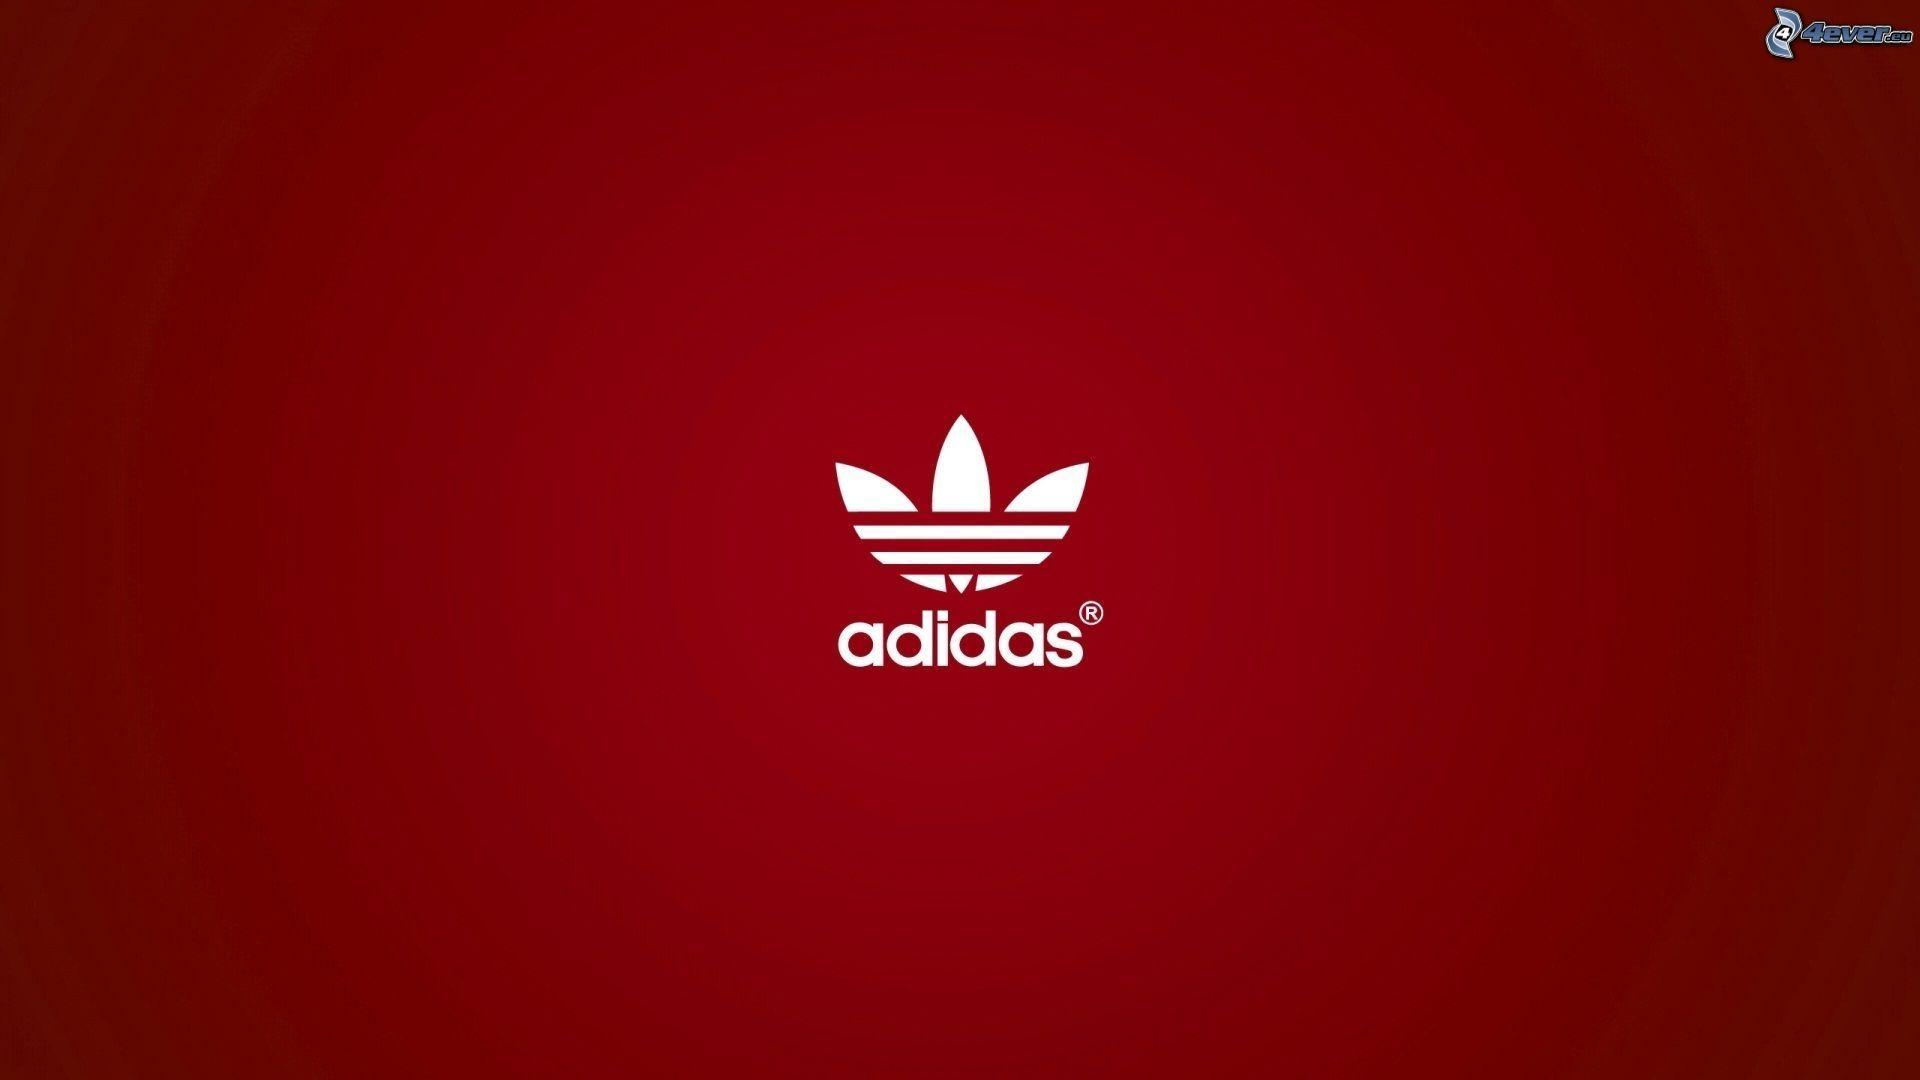 Wallpapers Adidas HD Red - Wallpaper Cave